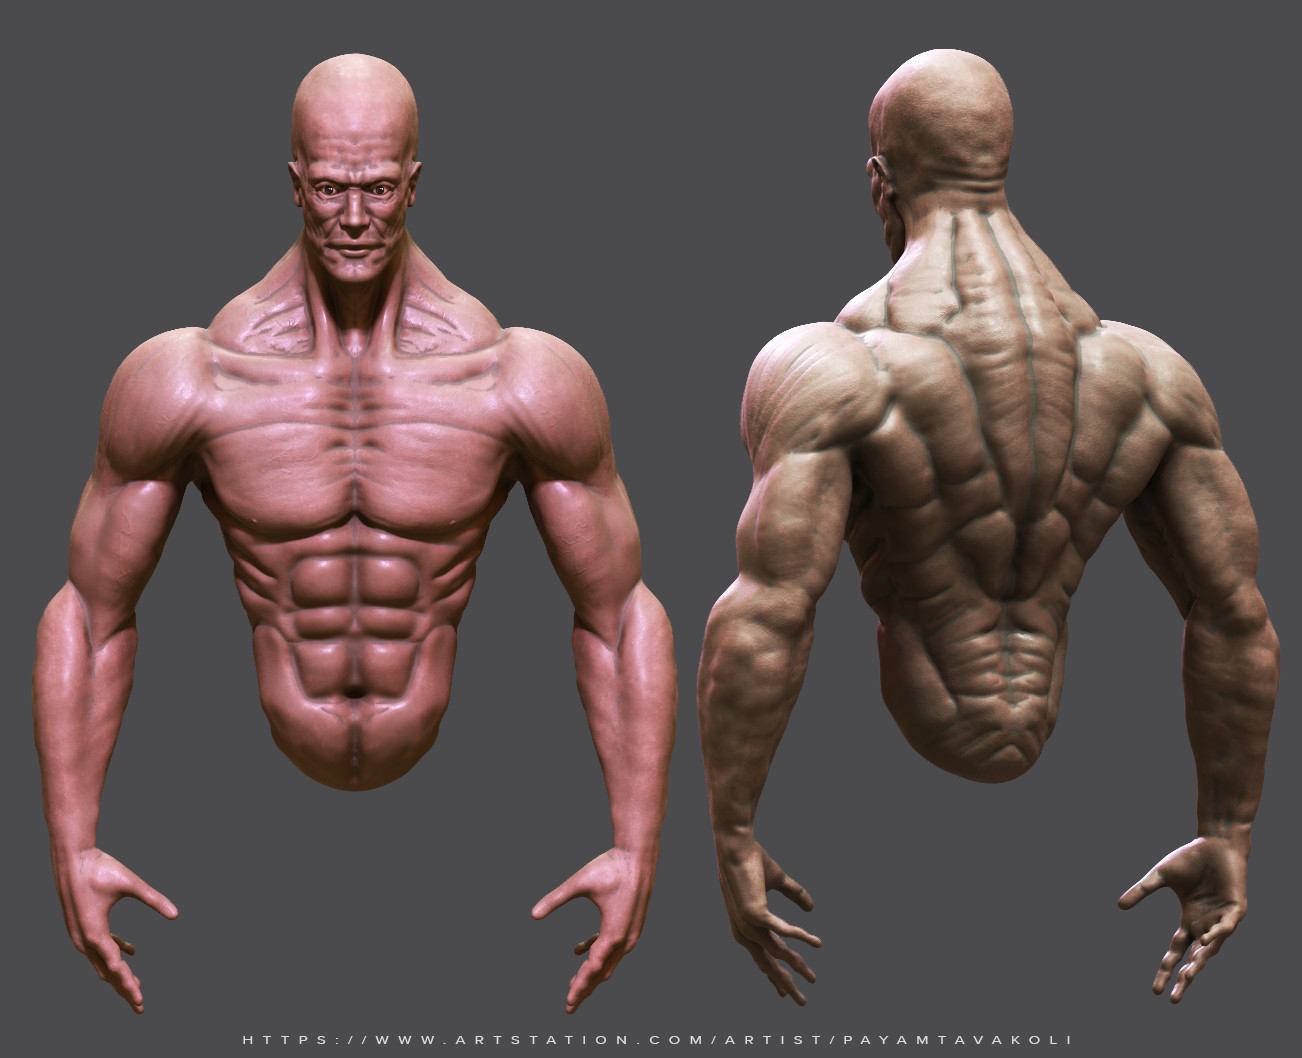 Payam Tavakoli - Male Anatomy Sketch